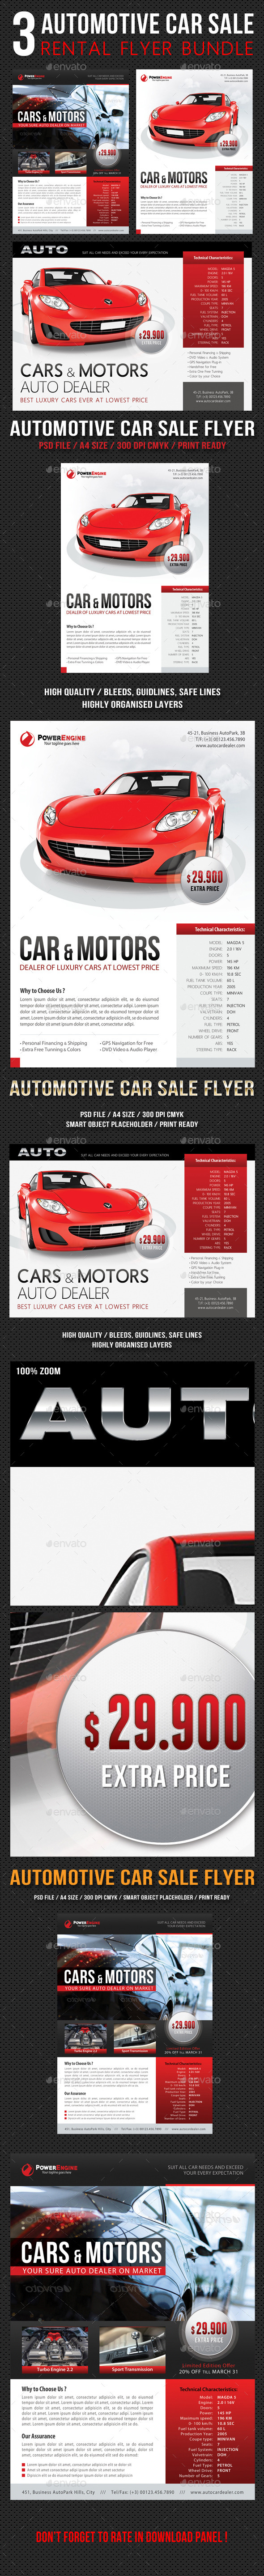 GraphicRiver 3 in 1 Automotive Car Sale Rental Flyer Bundle 10922071